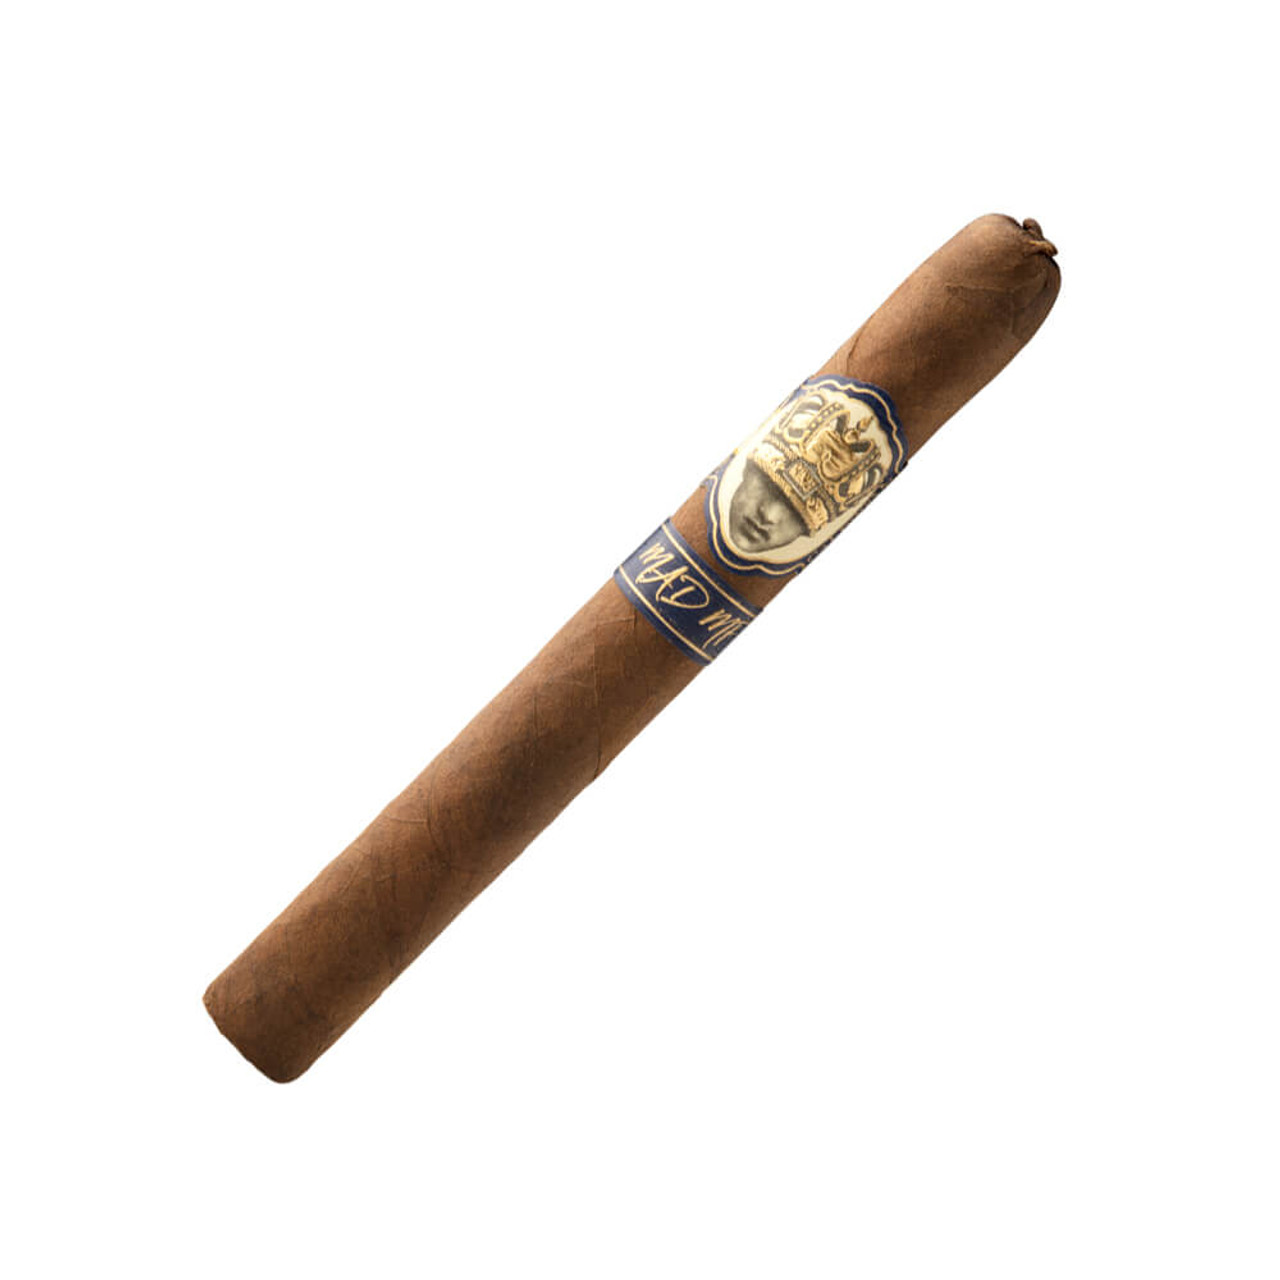 Caldwell Long Live The King Corona Cigars - 5.75 x 43 (Box of 10)